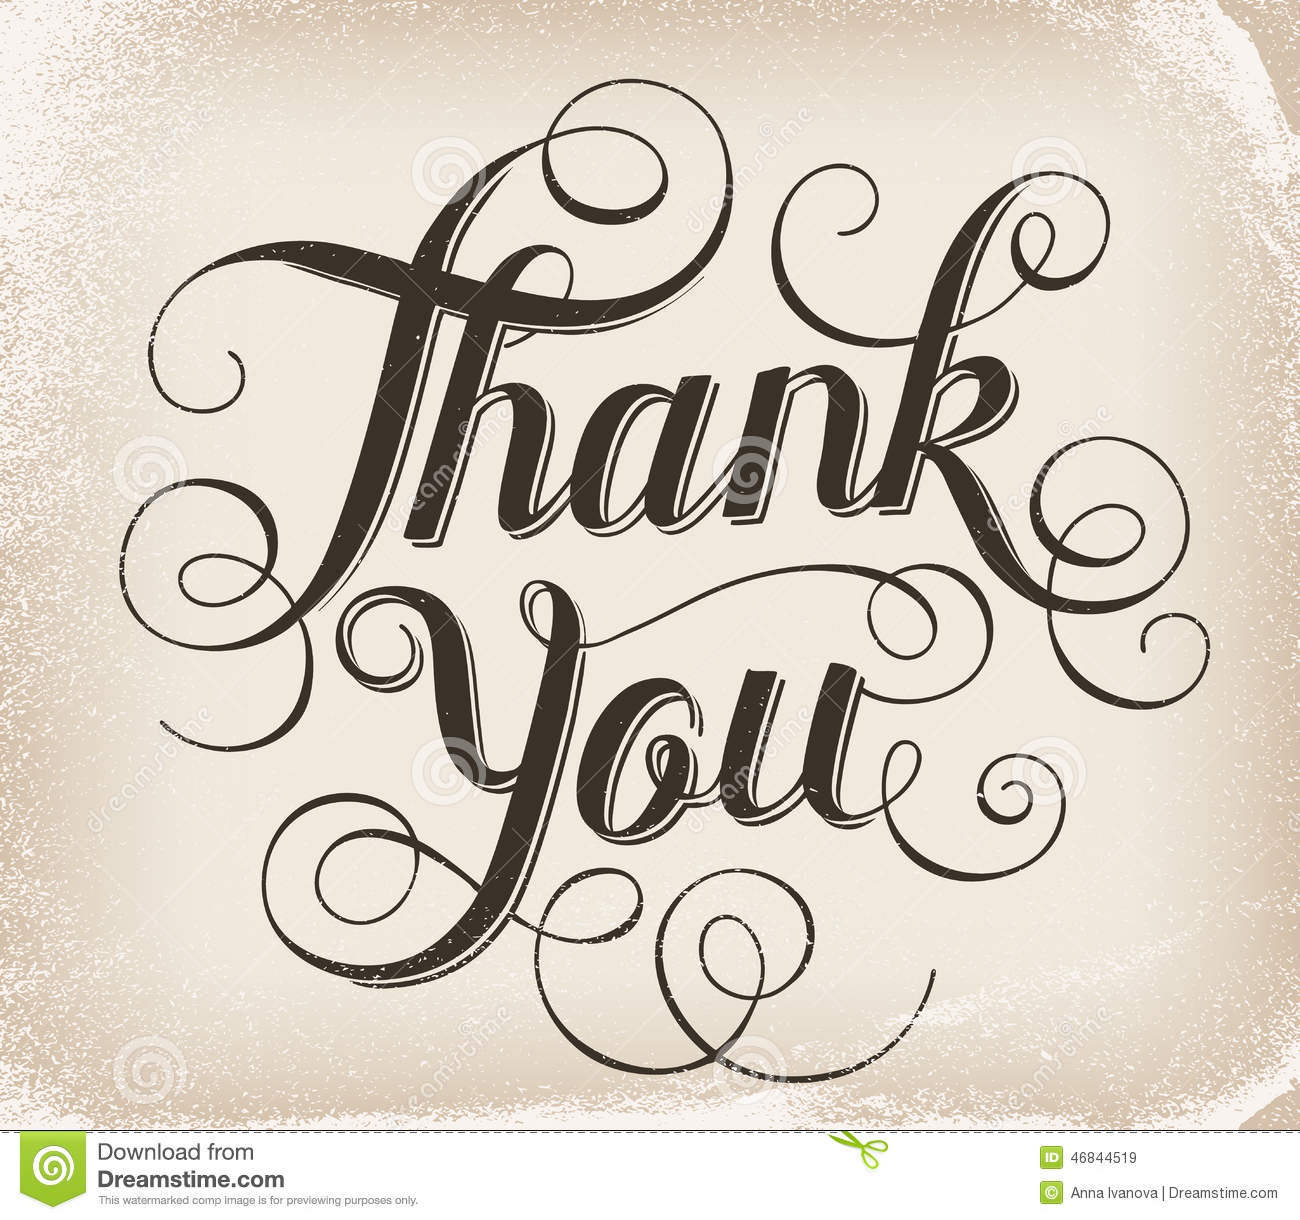 Thank you hand lettering calligraphy stock vector Thank you in calligraphy writing